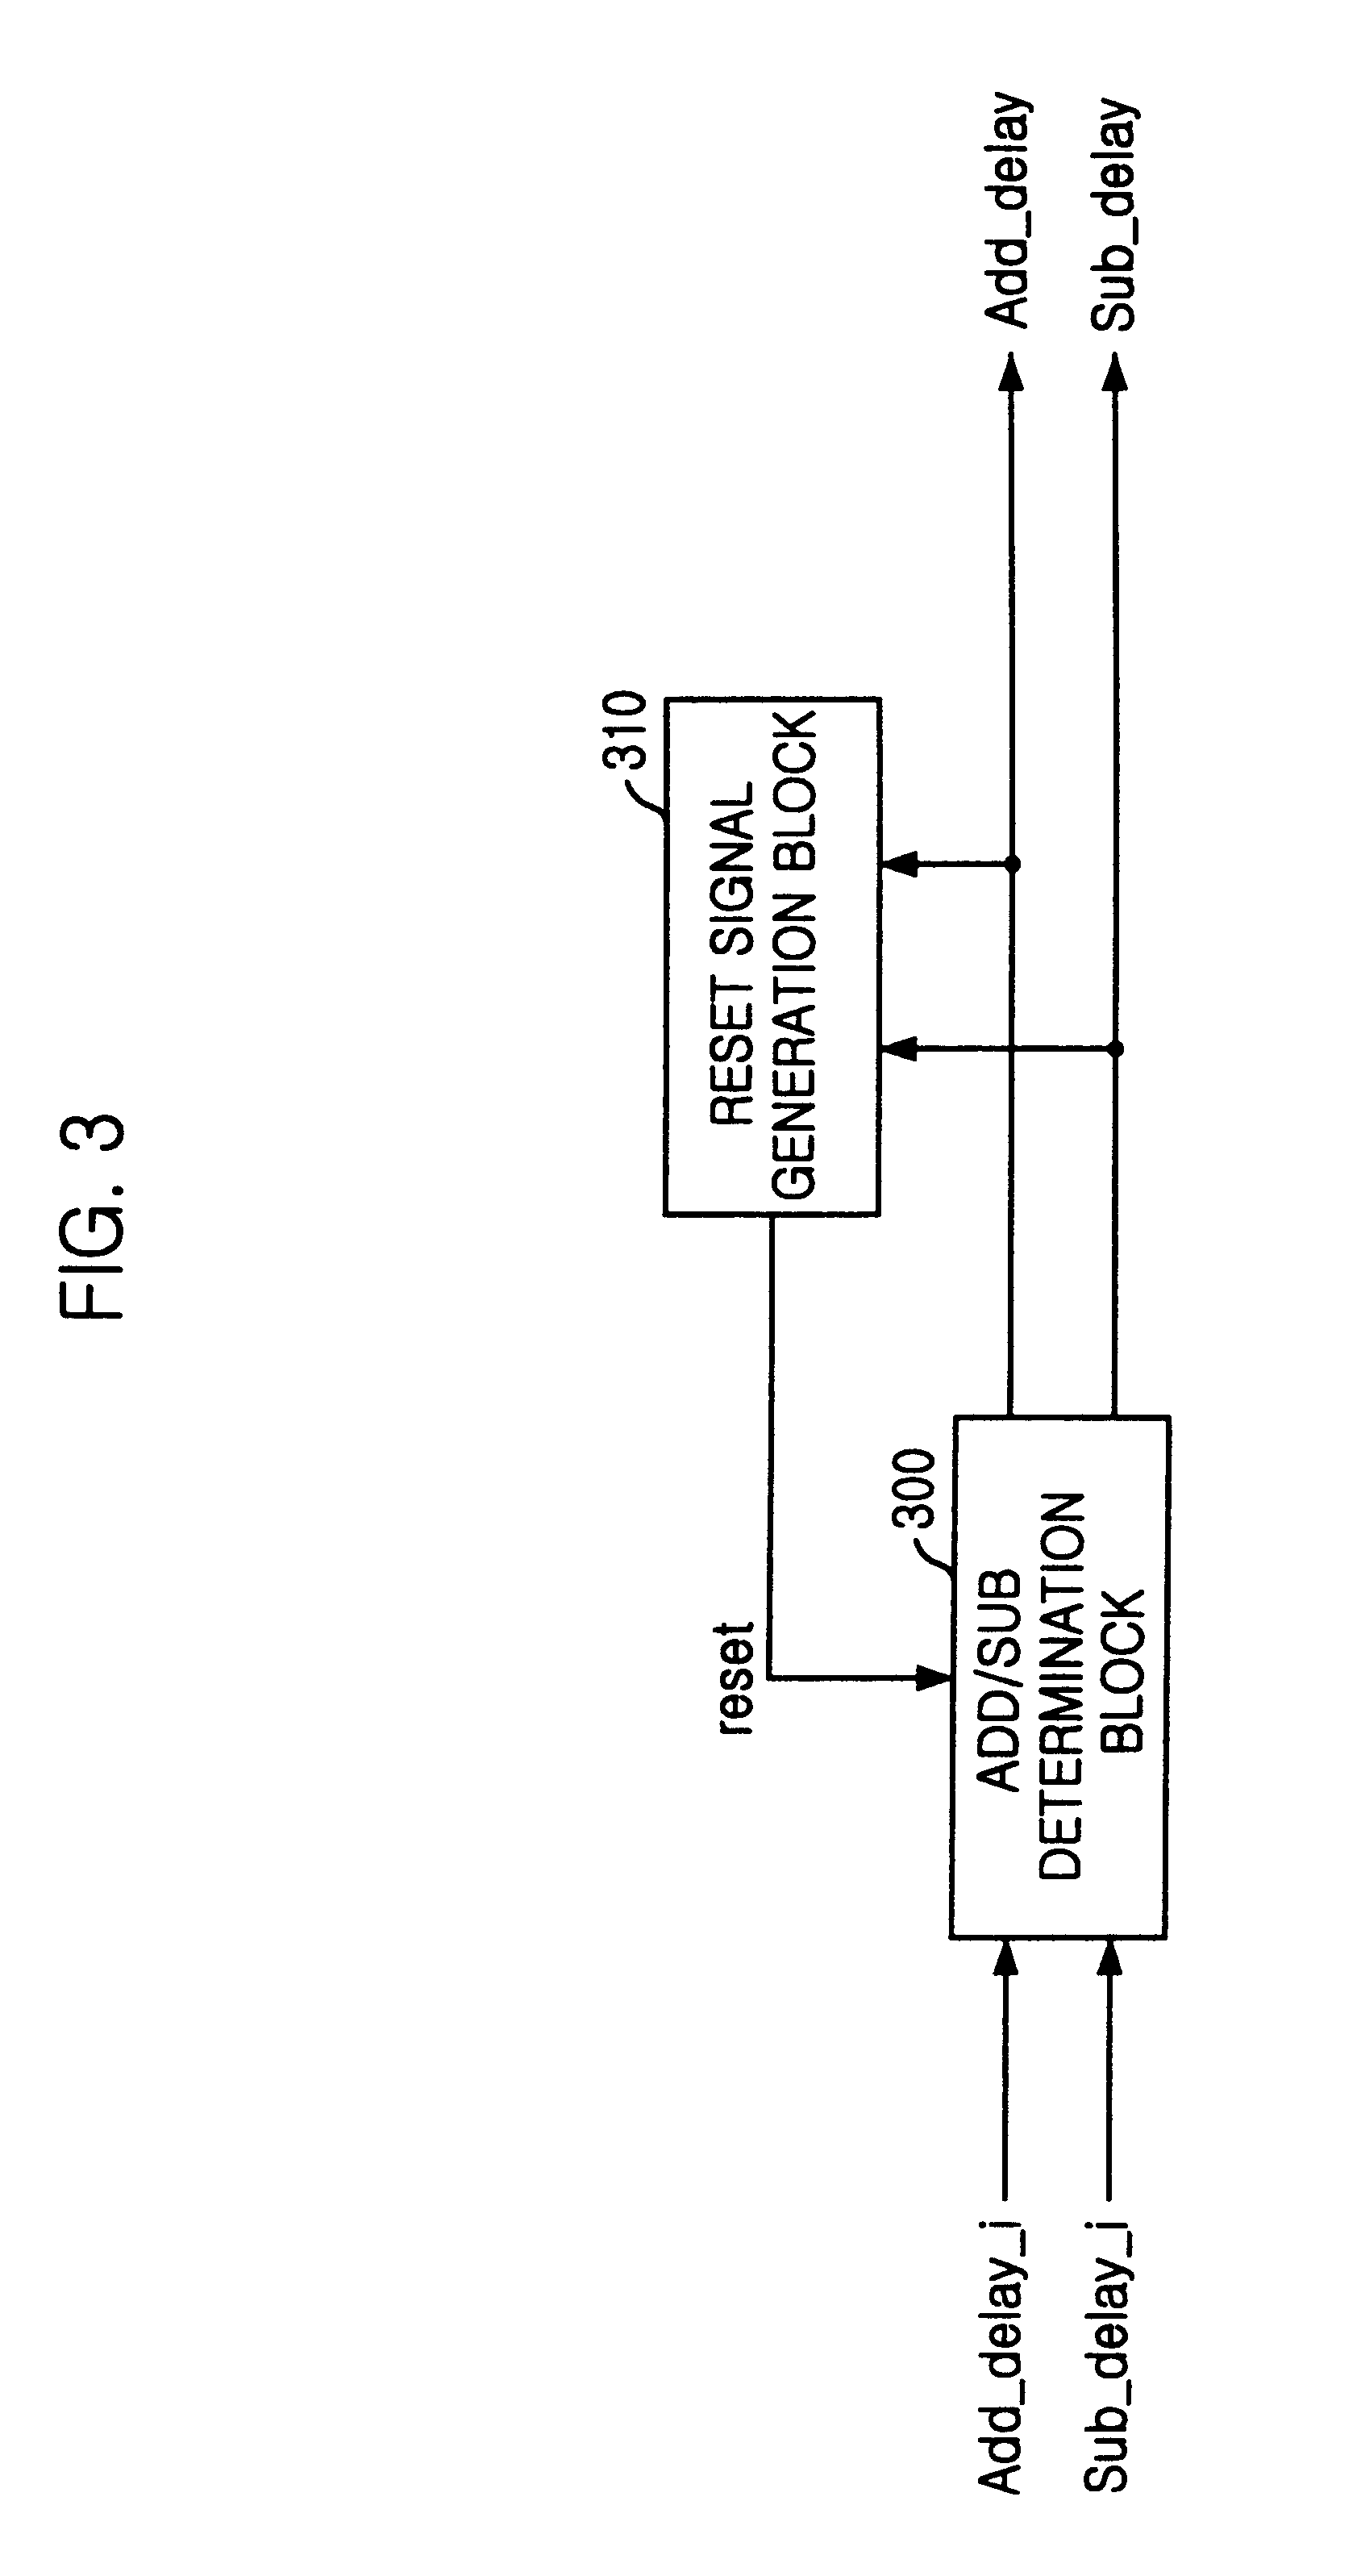 Patent Us6489822 Delay Locked Loop With Control Unit For Block Diagram Drawing